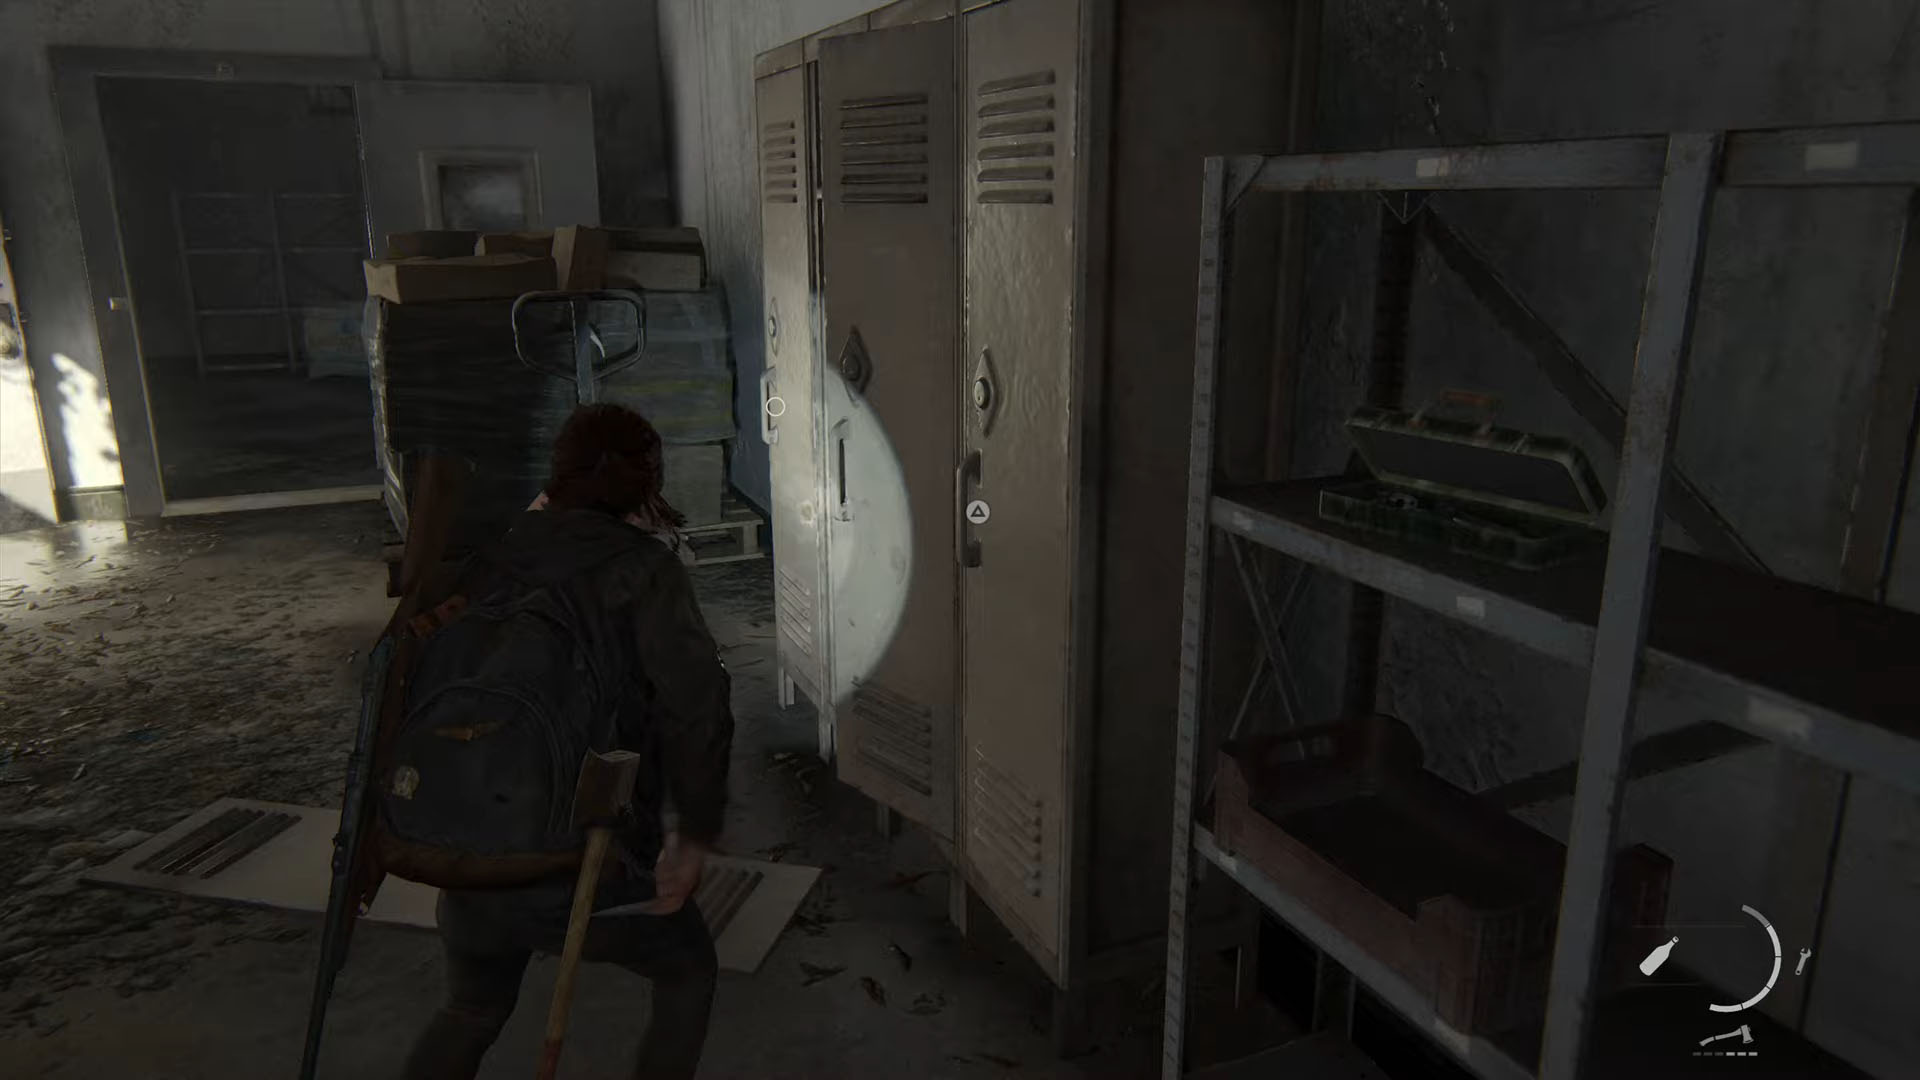 Sergeant Frost trading card location - tlou2